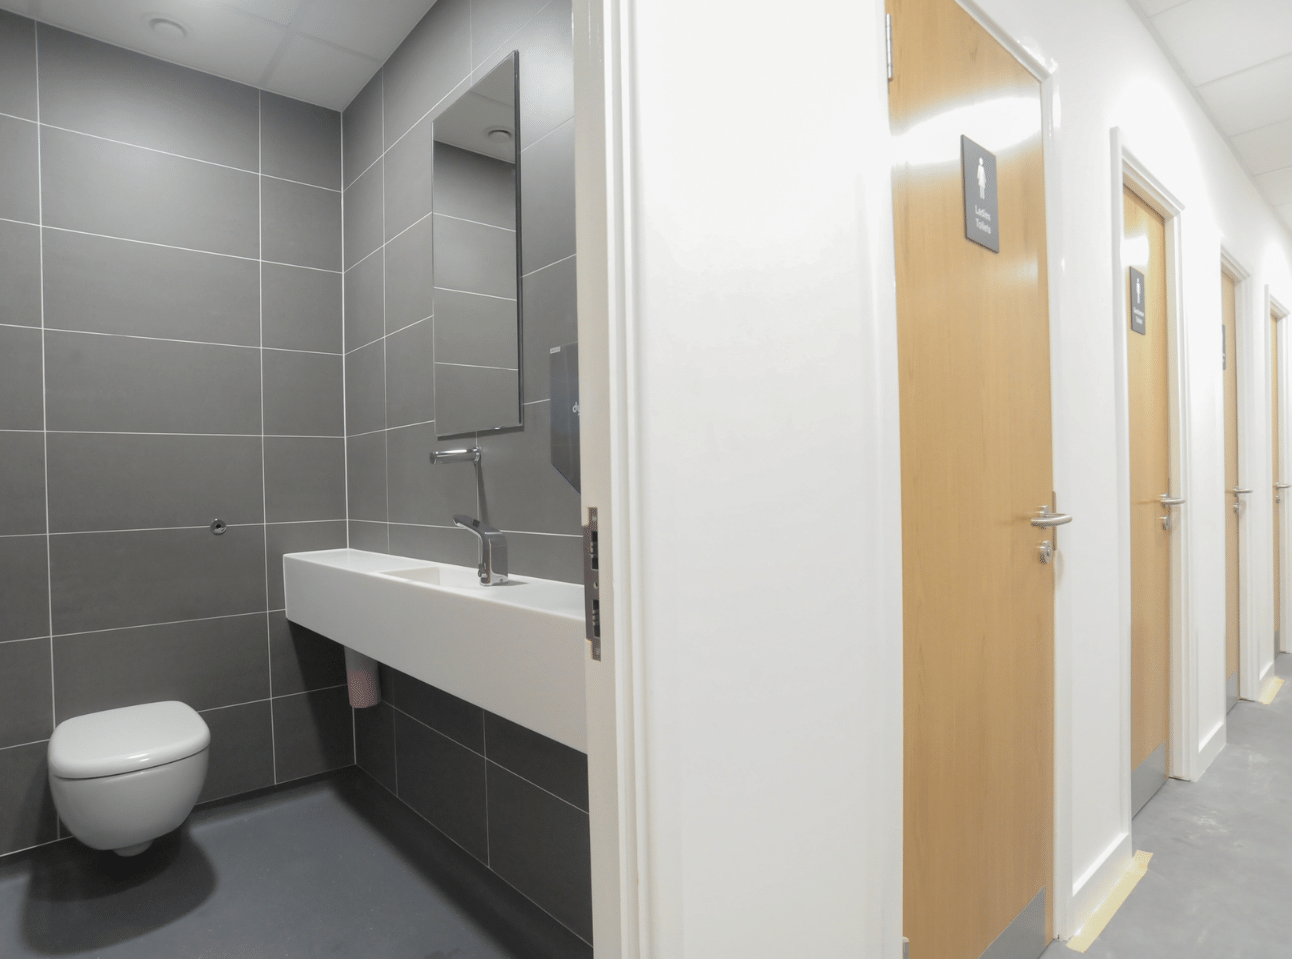 Super-loo Cubicles | National Physics Laboratory Case Study | Commercial Washrooms